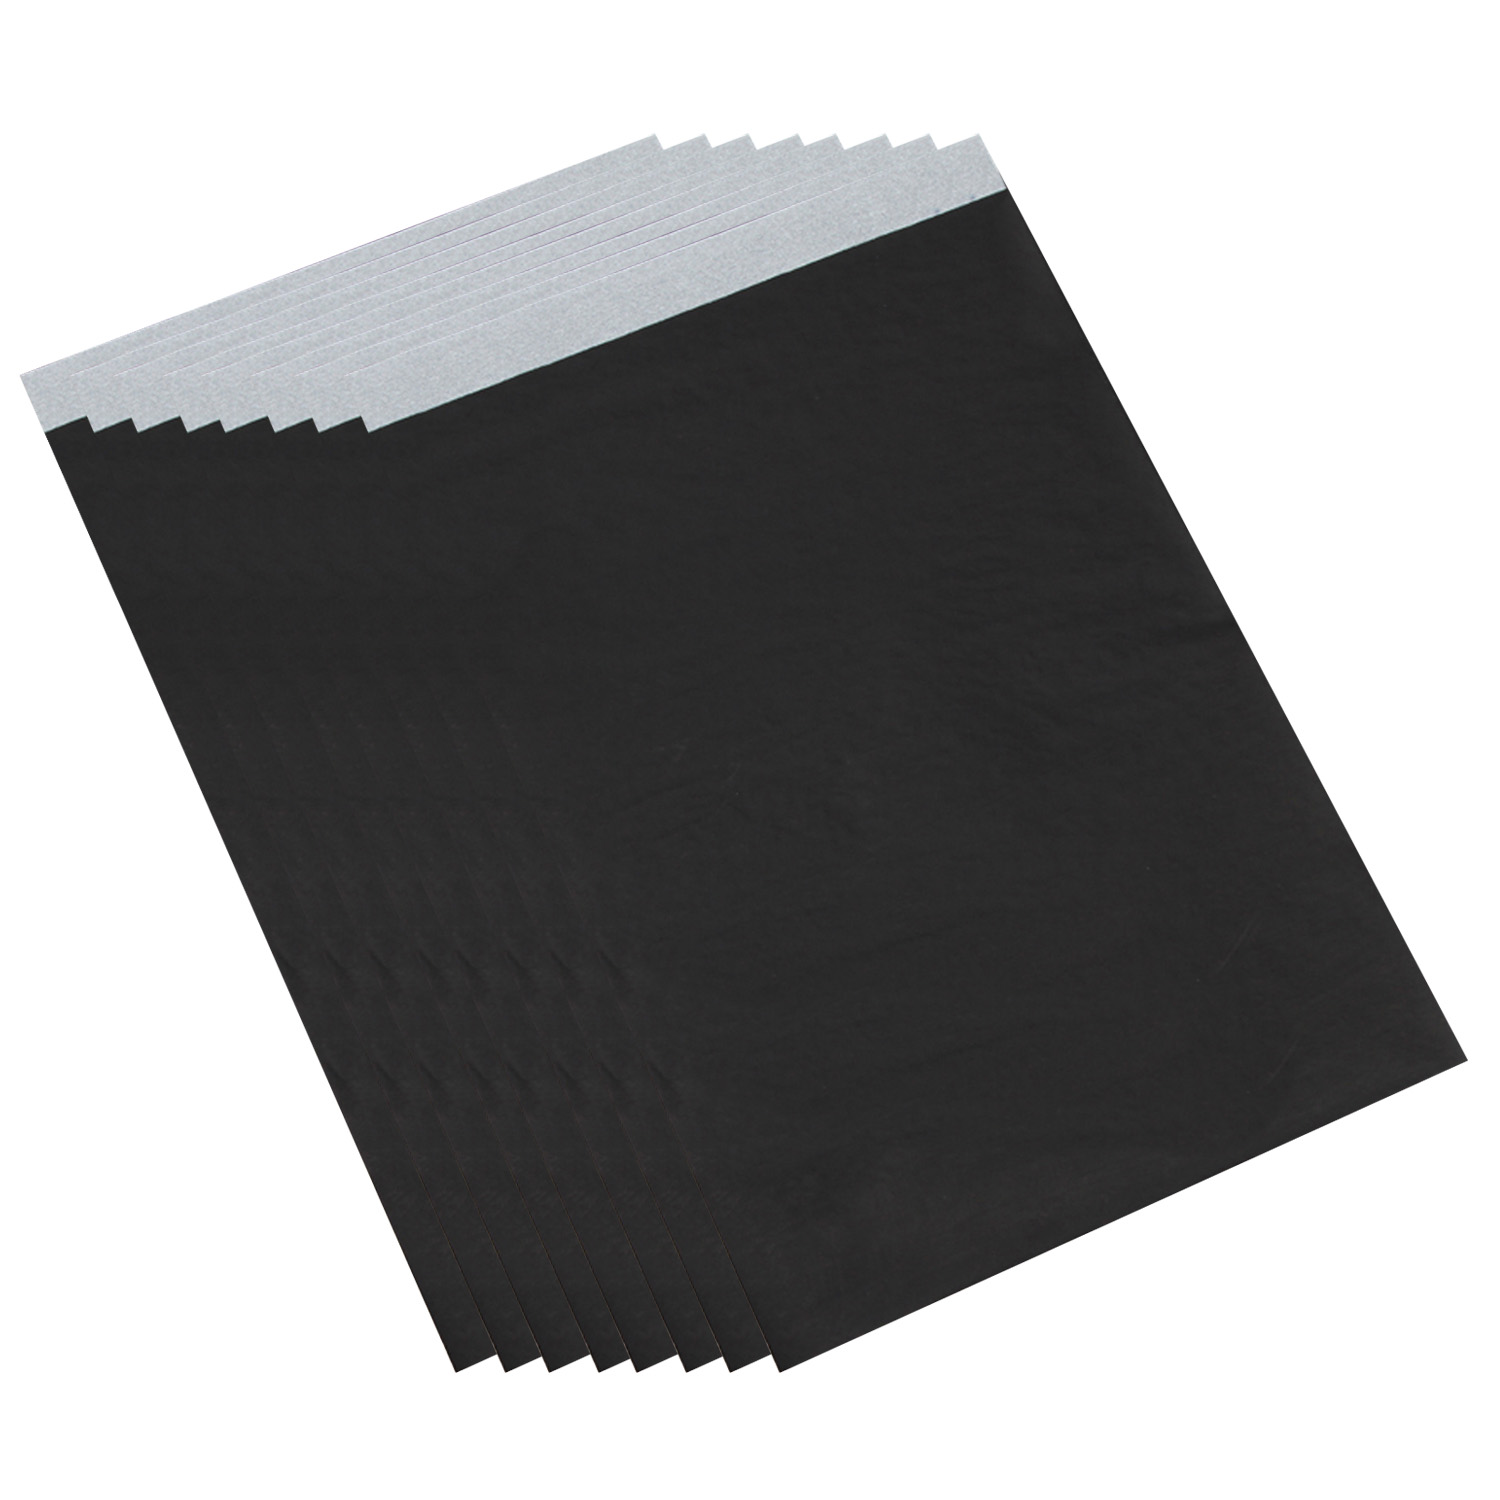 100 Sheets A4 Size Single-side Reusable Carbon Transfer Tracing Paper for Home Office Black